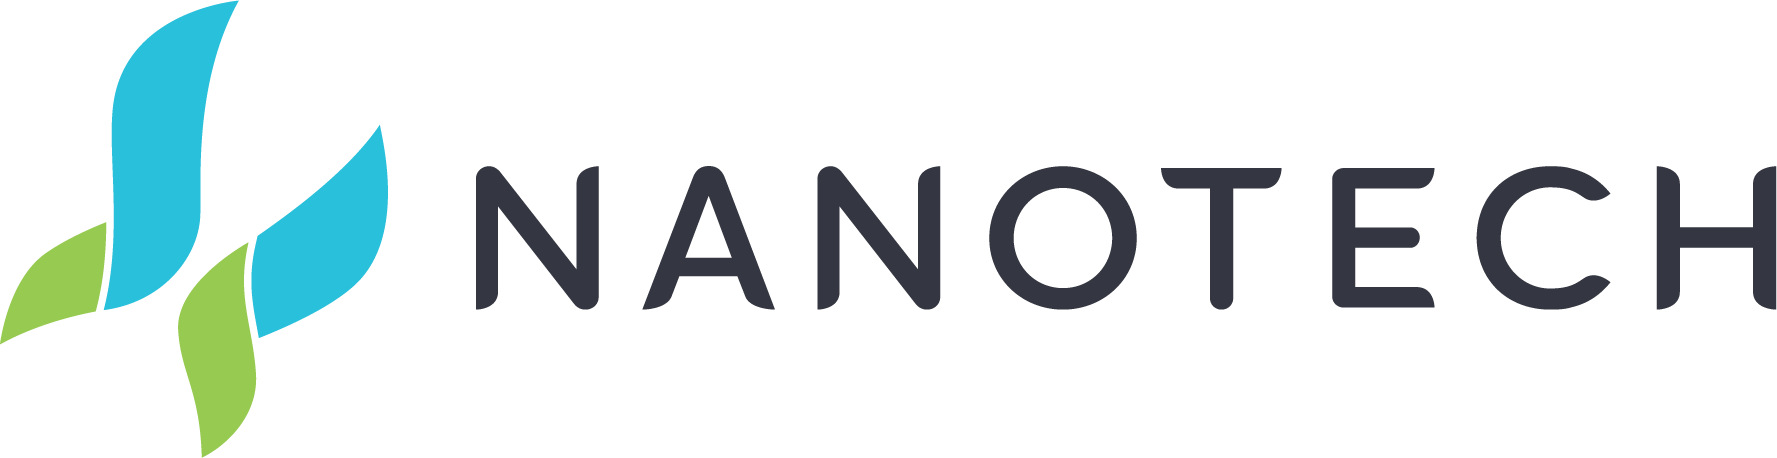 Nanotech Announces Fiscal 2019 Fourth Quarter and Year-End Results